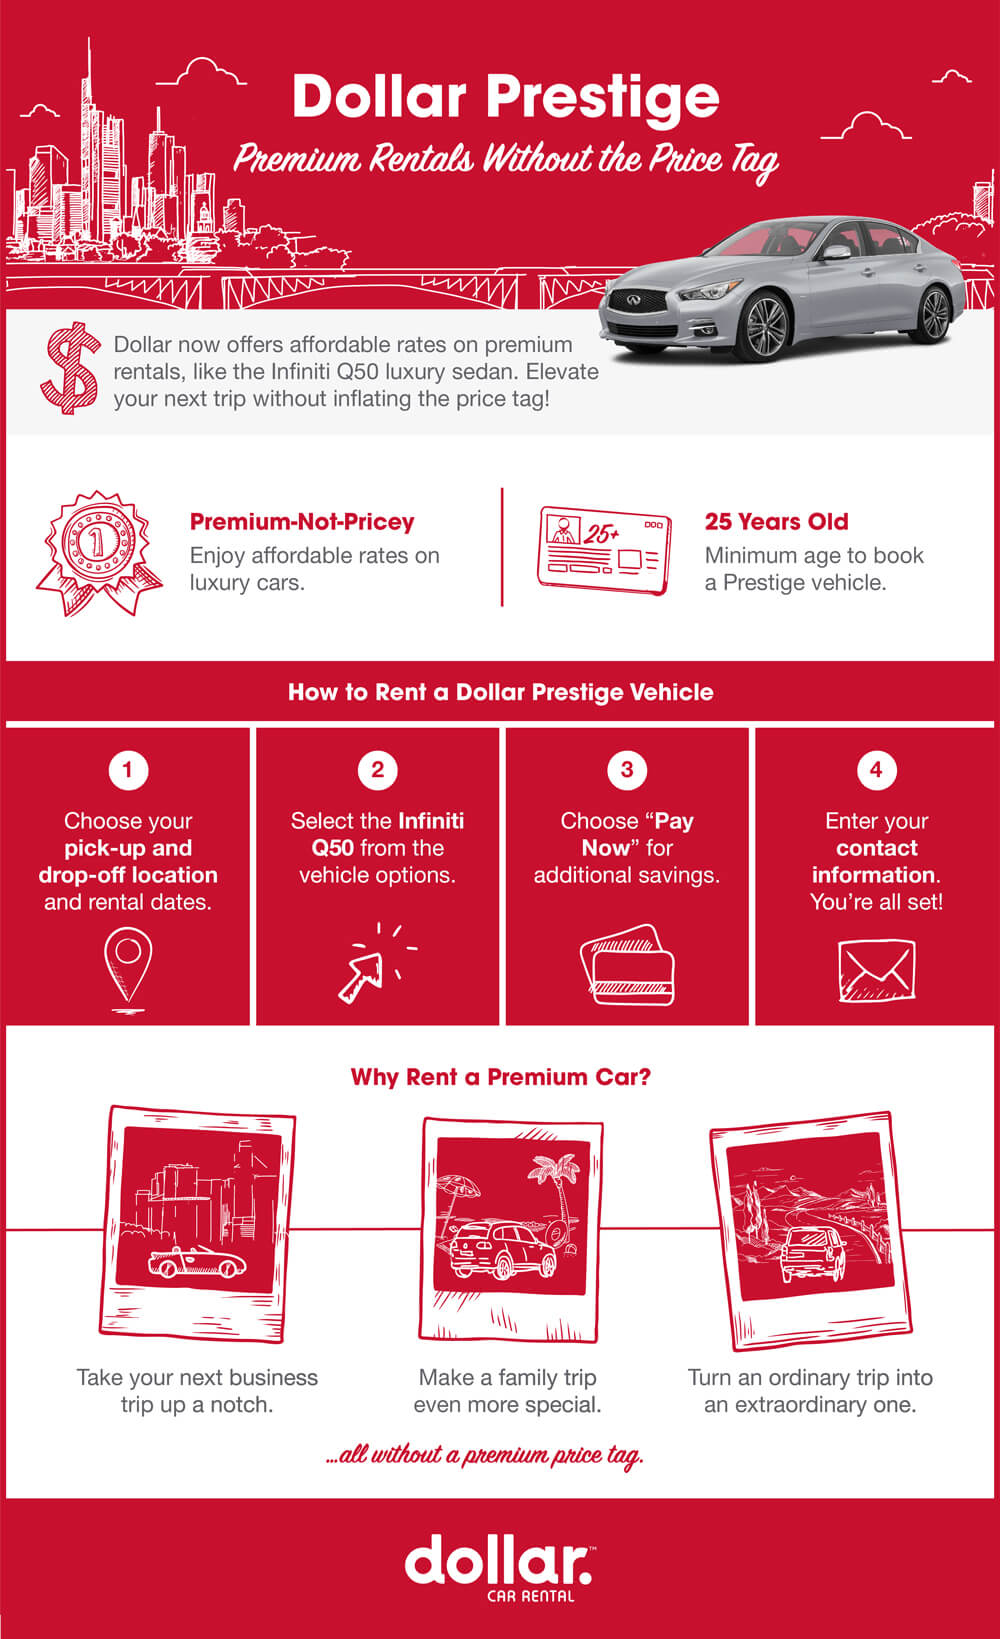 Introducing Dollar Prestige: How to Rent a Premium-Not-Pricey Car